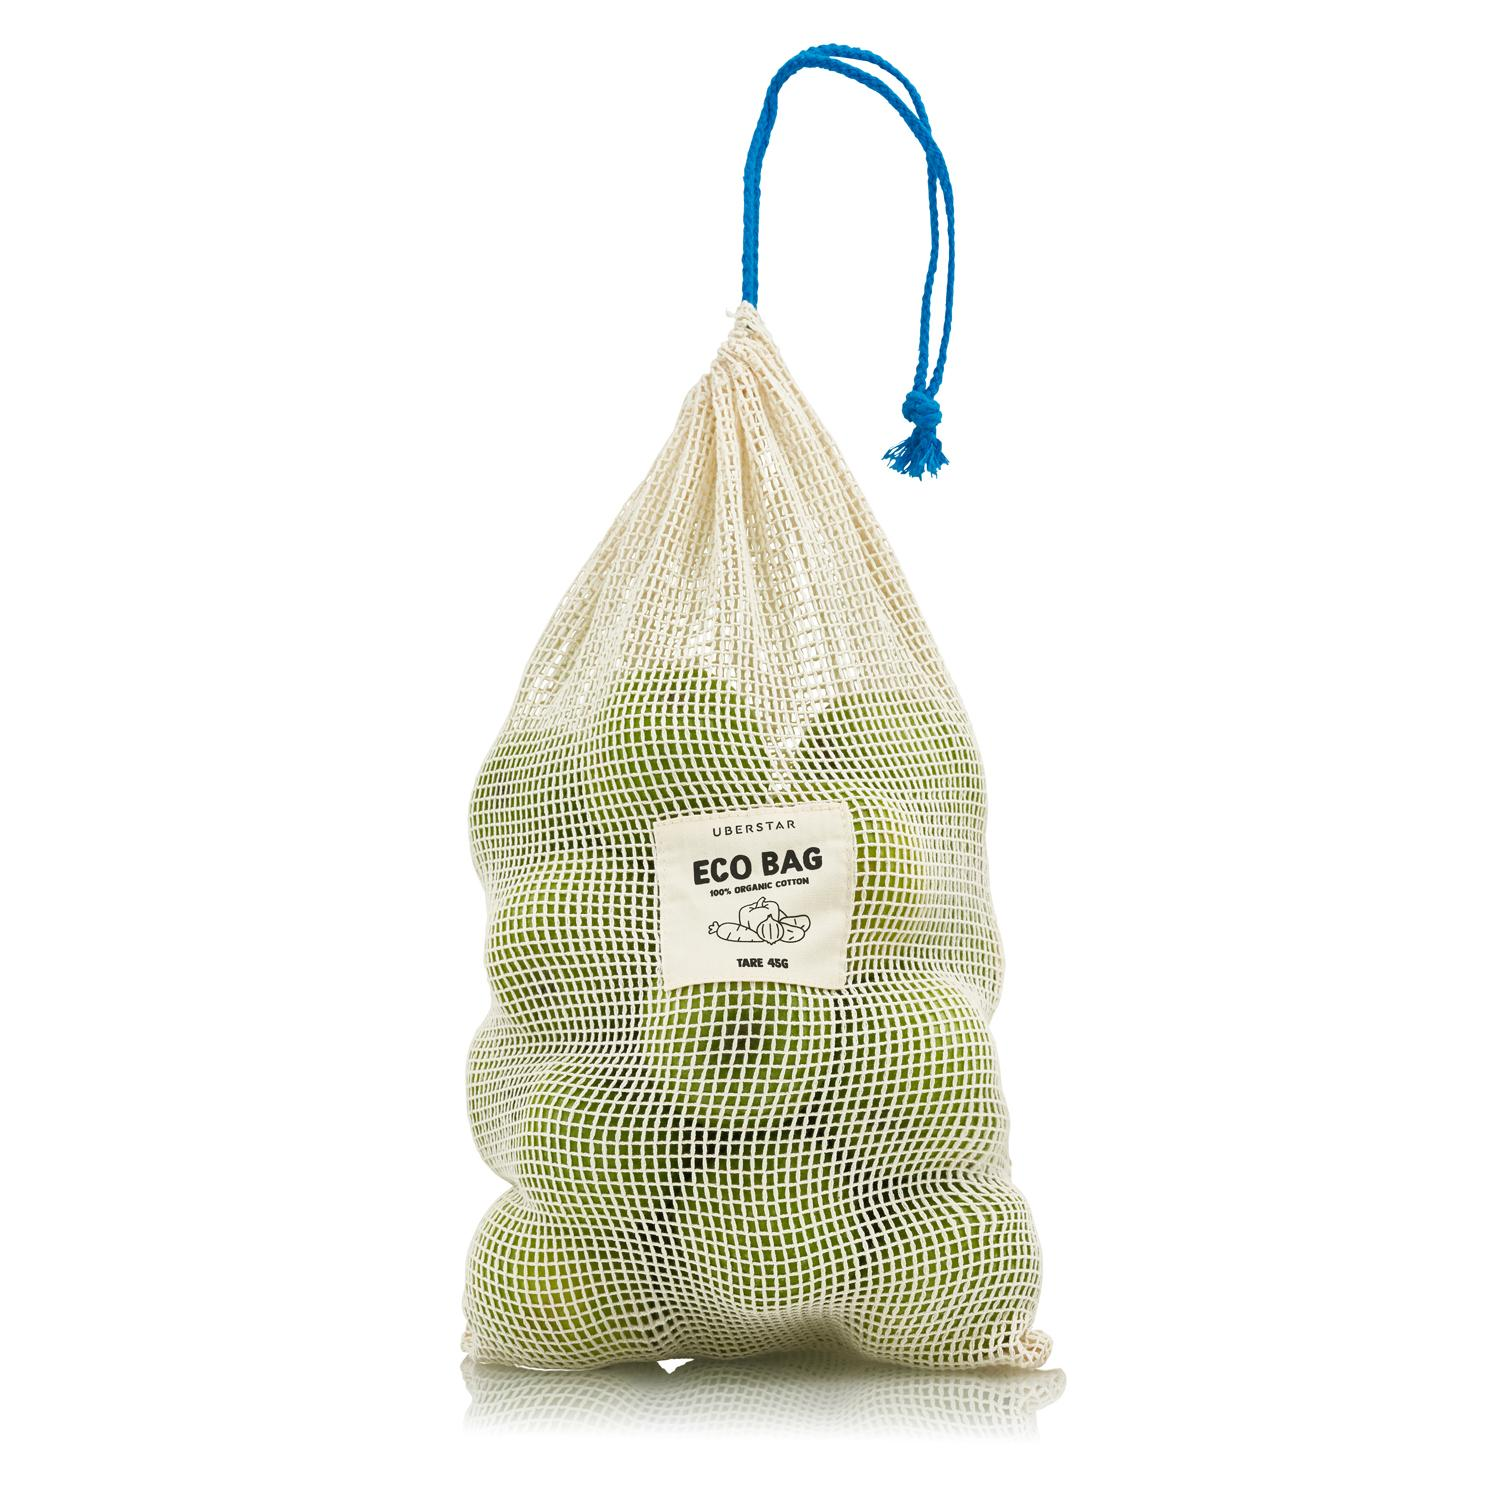 Eco Bag - Organic Fruit & Veg Bag (Single)